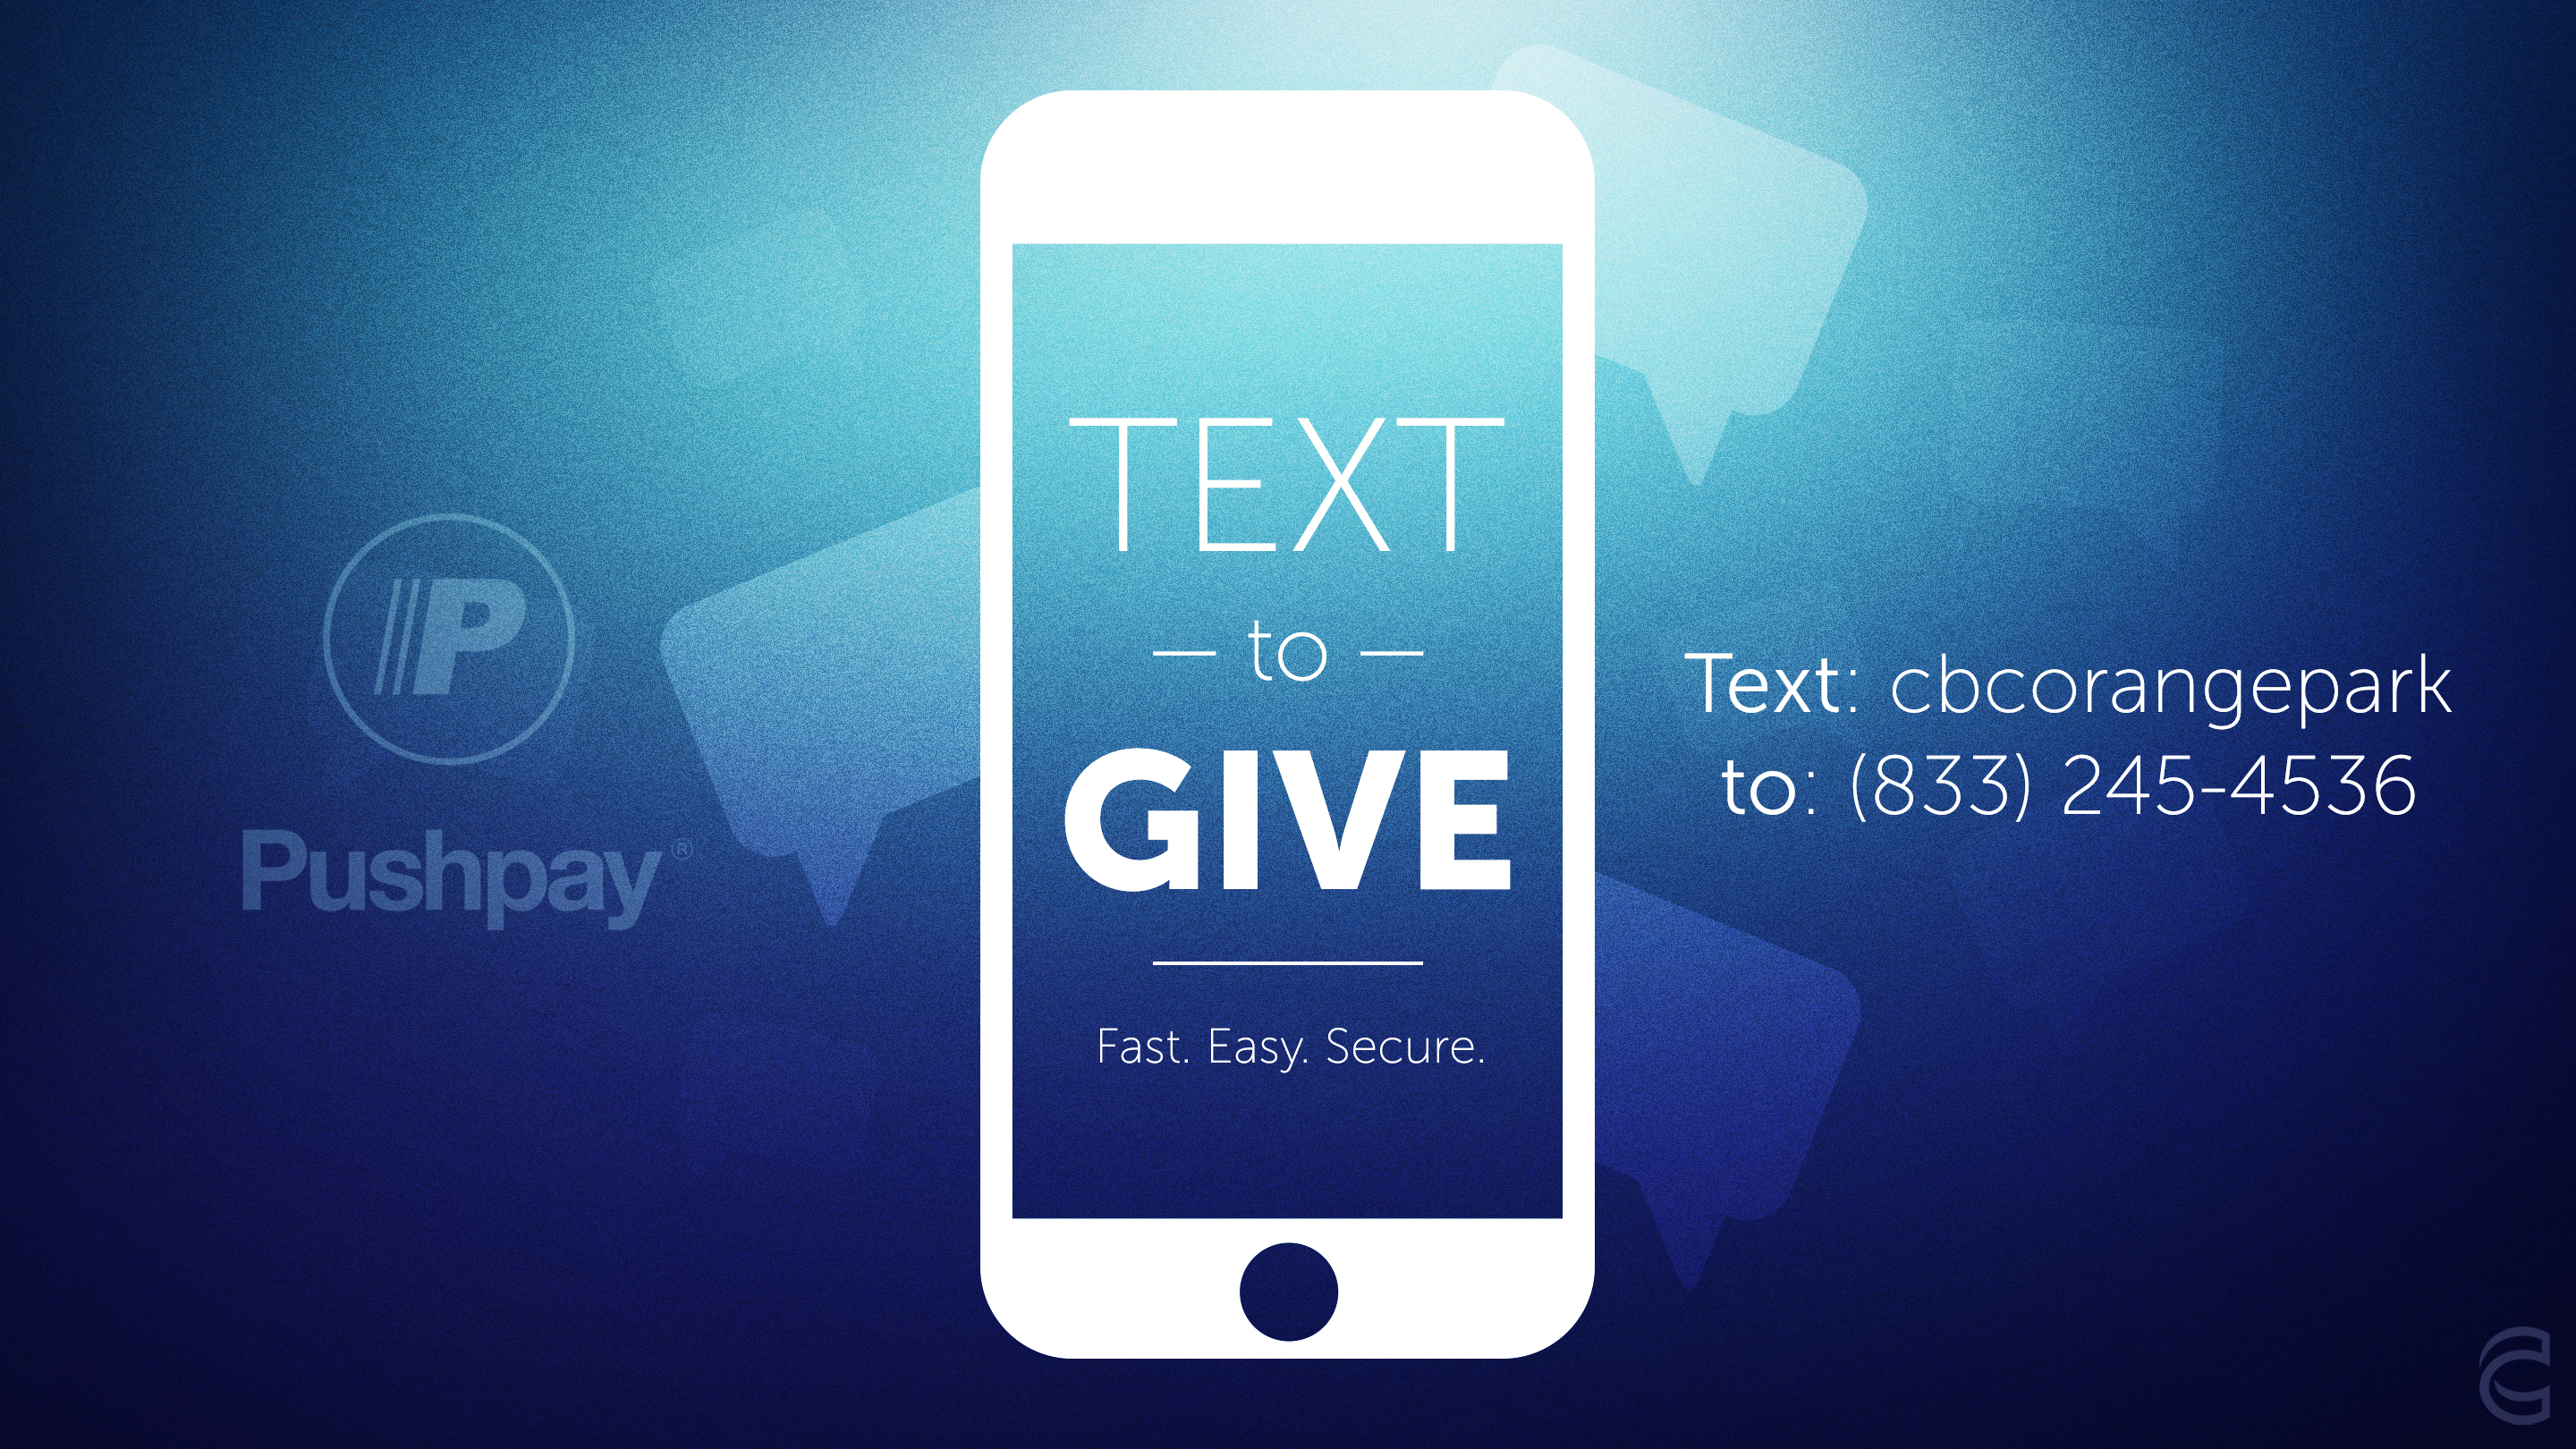 text_to_give-updated